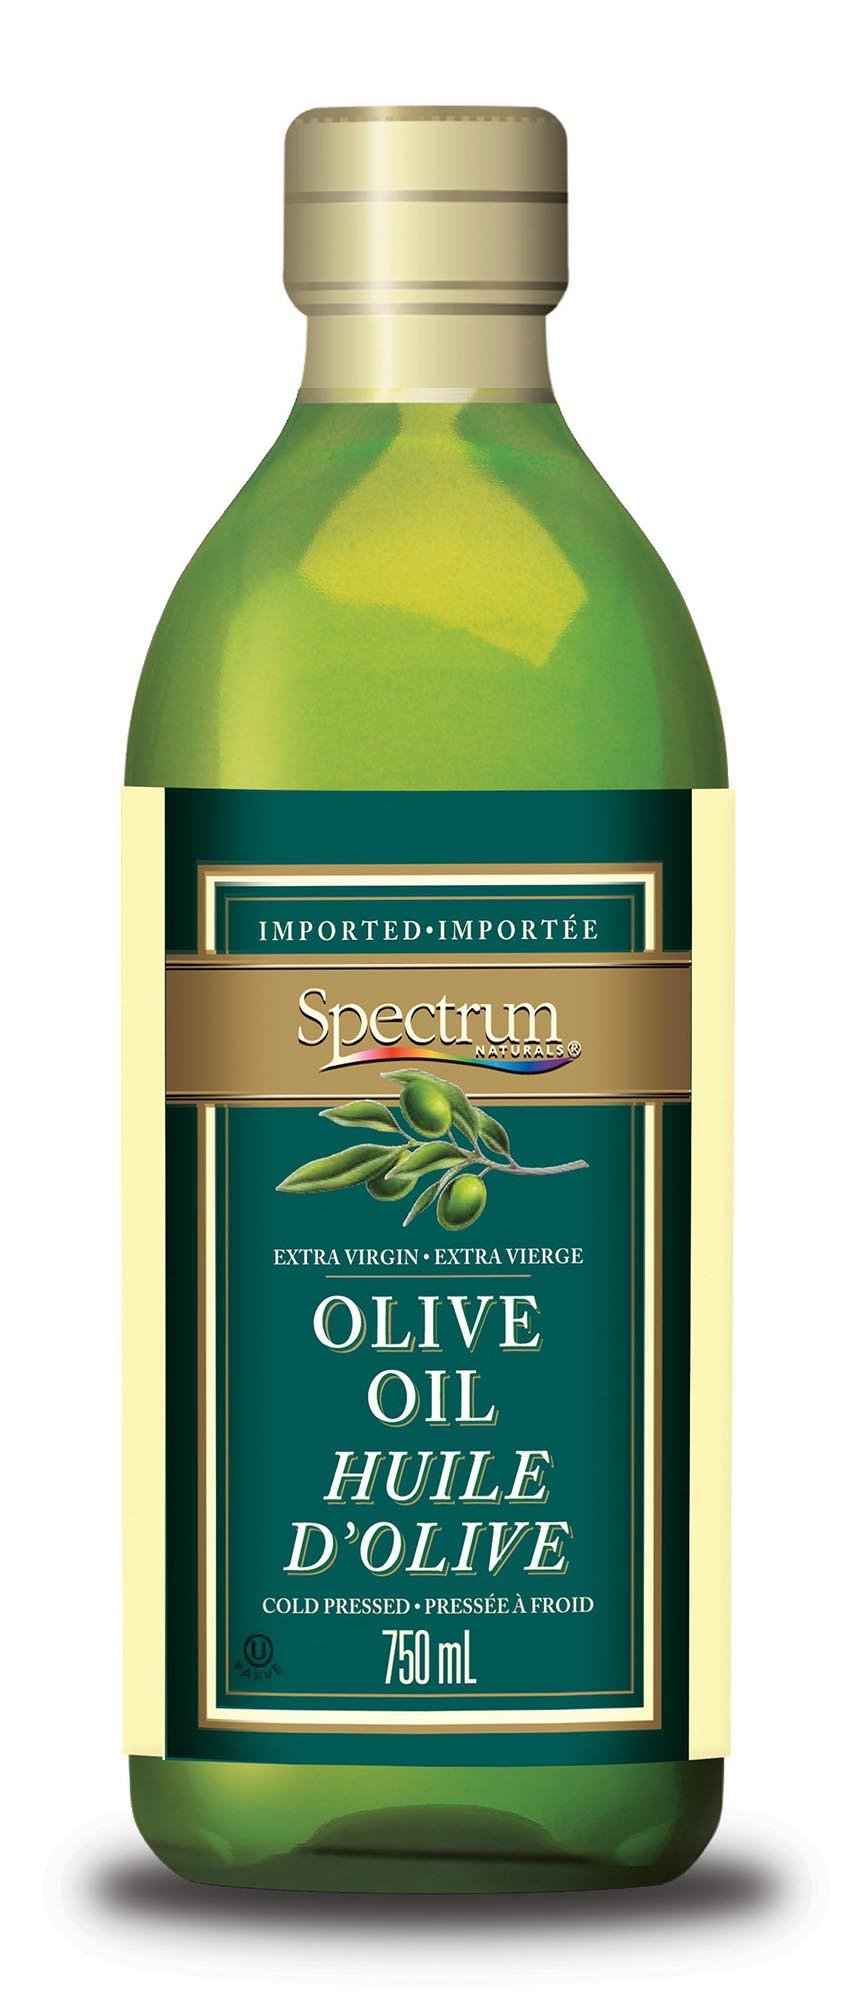 Spectrum Olive Oil (750ml)